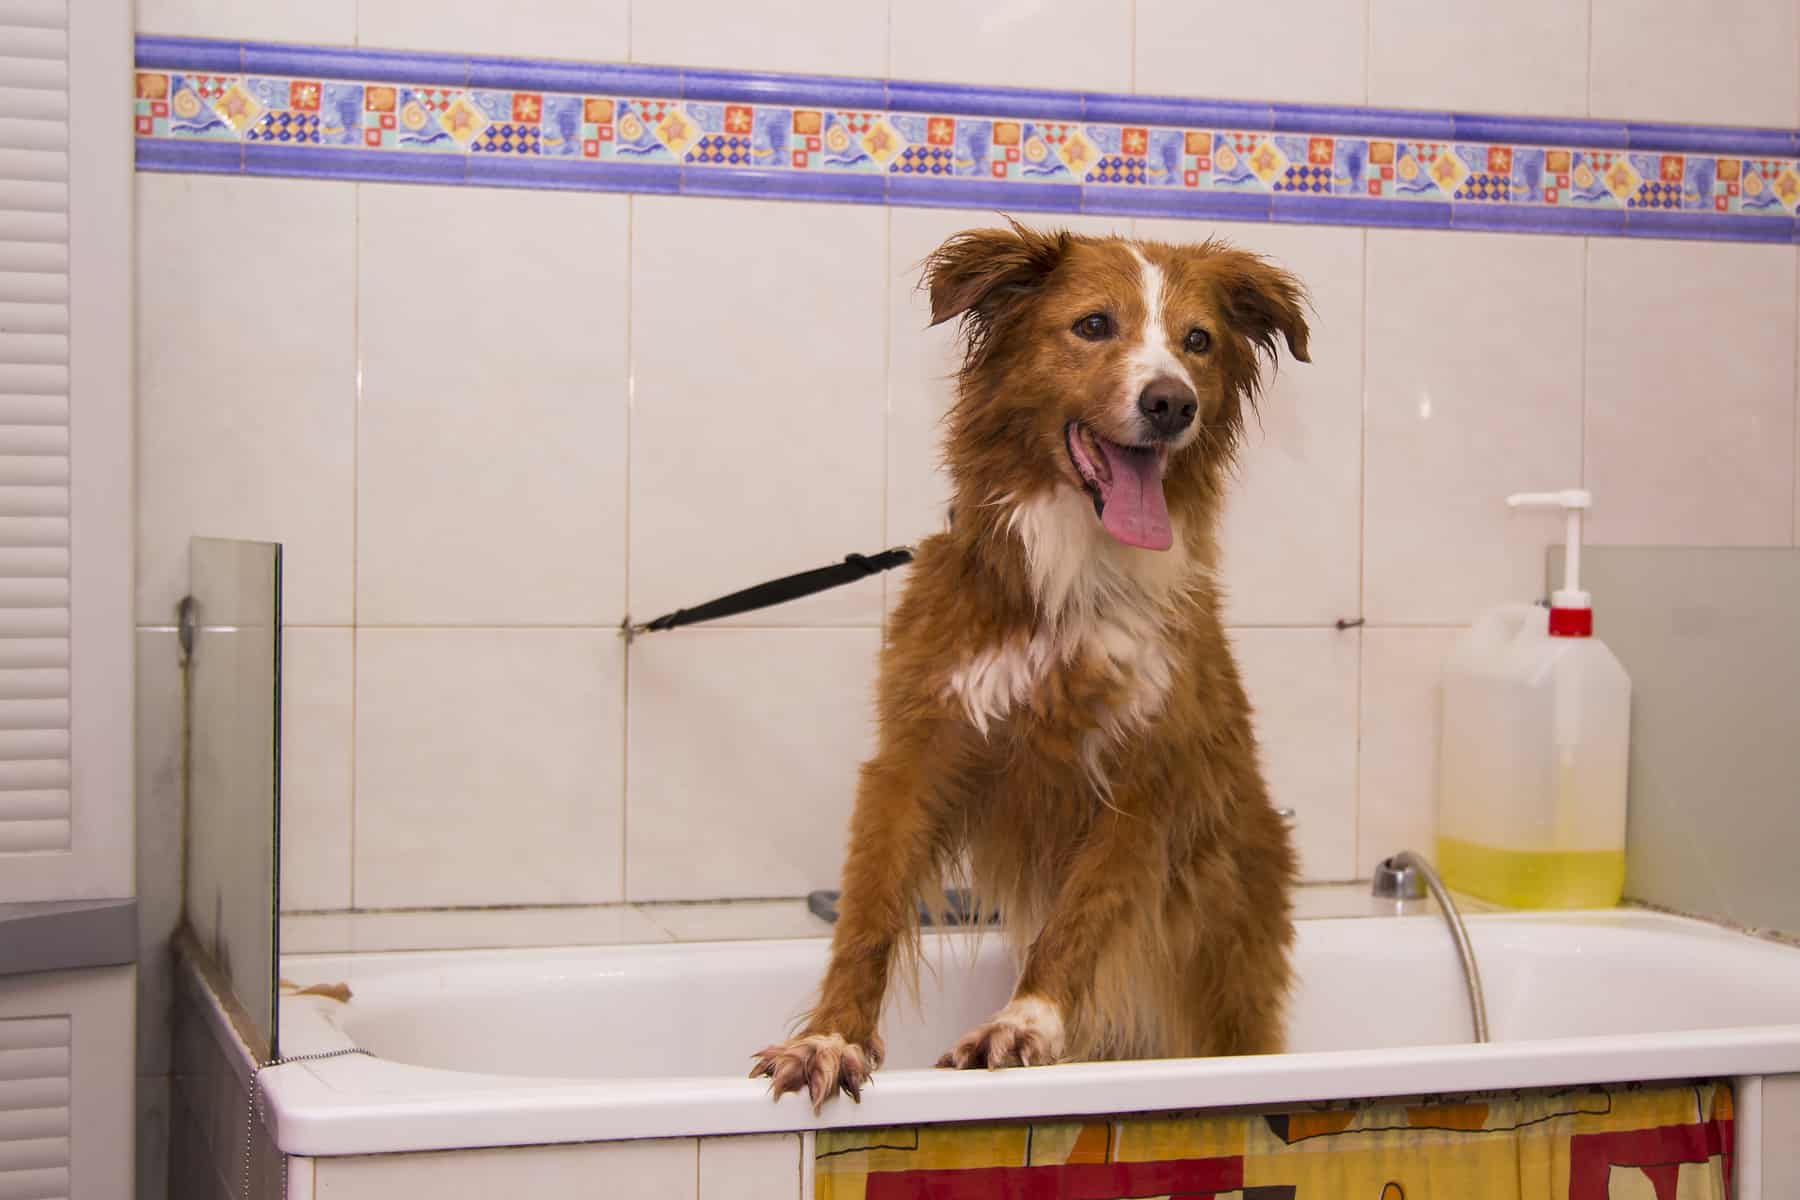 Border Collie at a groomer's bath tub